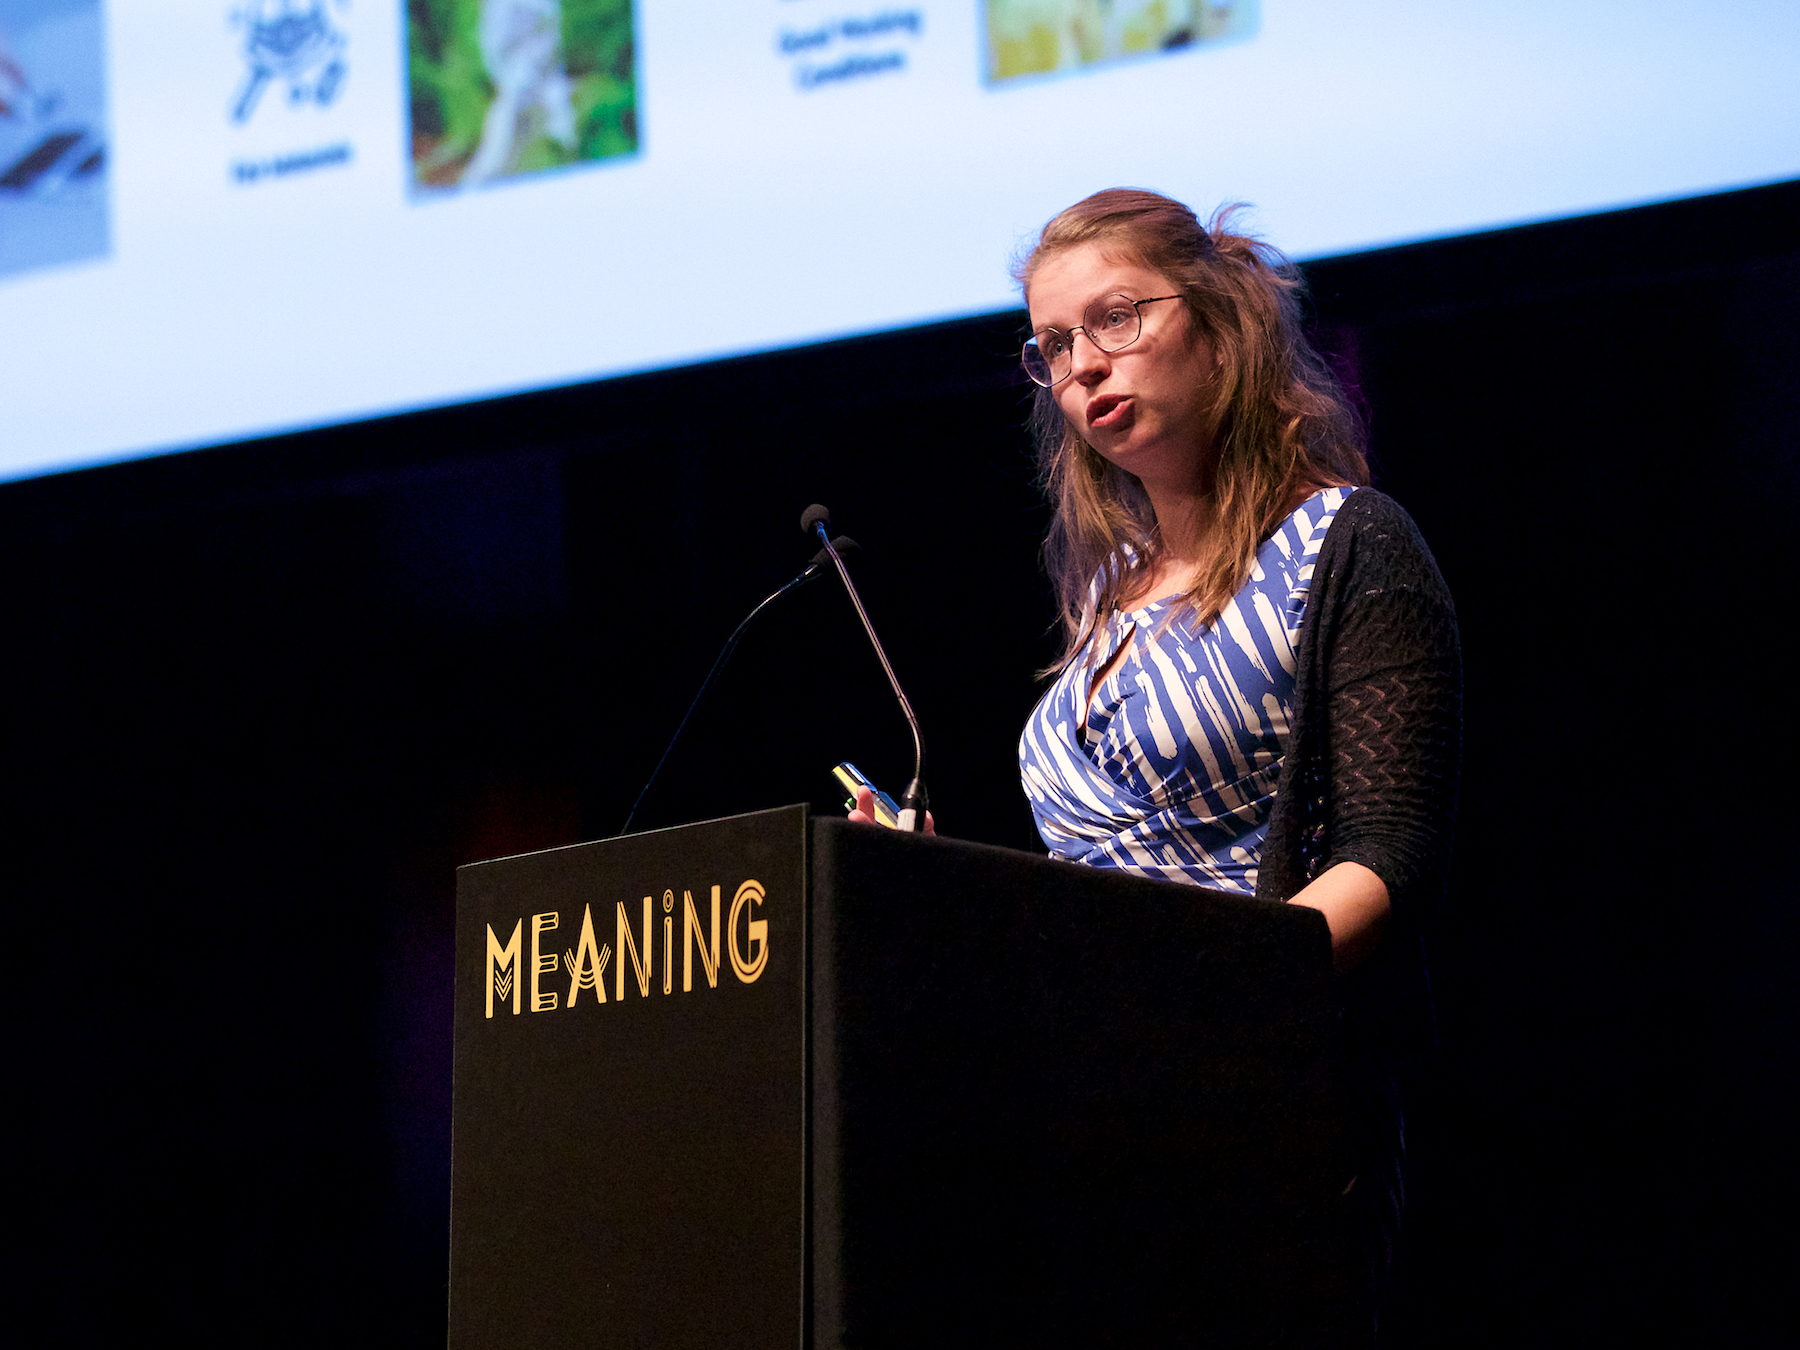 Bibi Bleekemolen at Meaning 2018